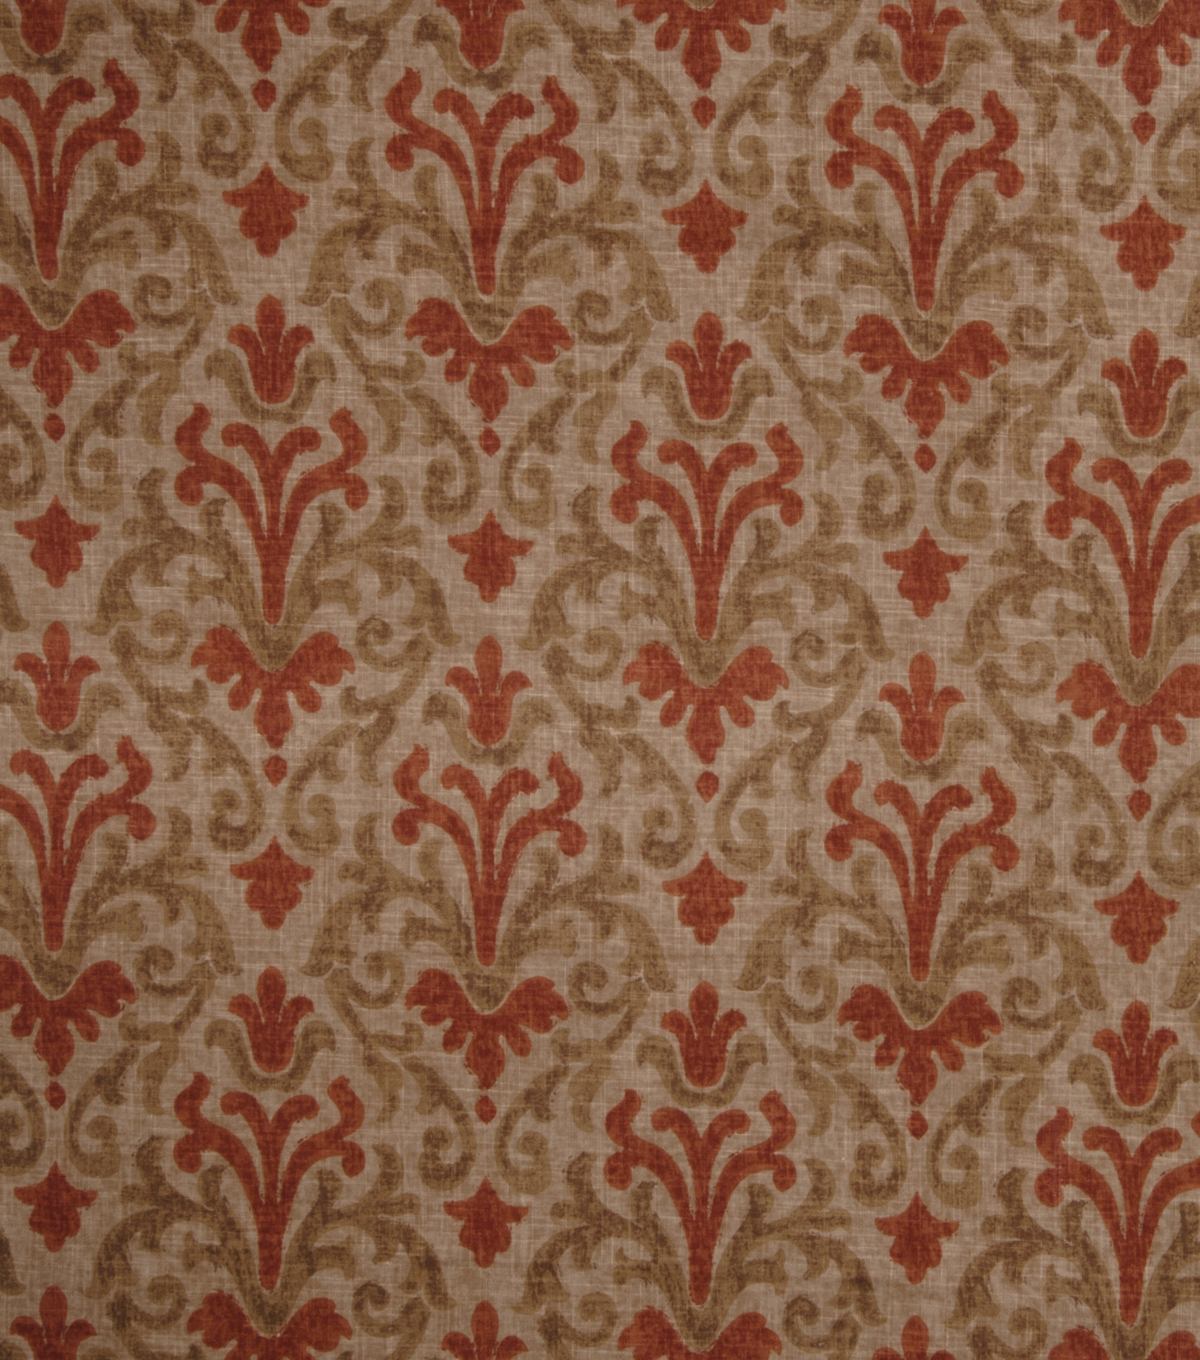 Home Decor 8\u0022x8\u0022 Fabric Swatch-Jaclyn Smith Cider  Terra Cotta